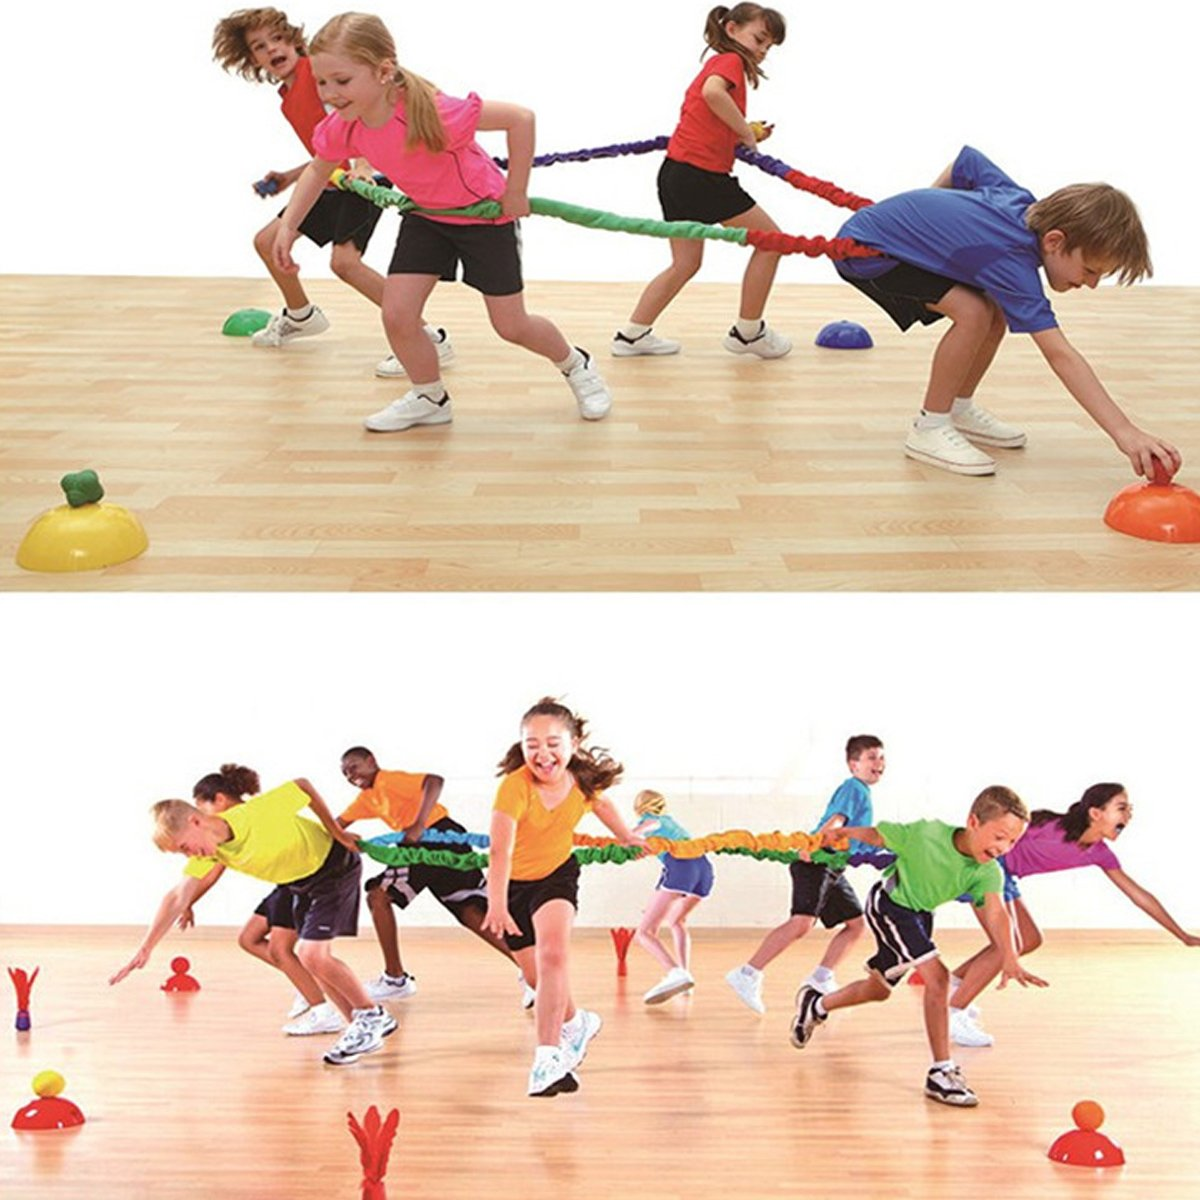 Elastic Fleece Cooperative Stretchy Band Integrations Dynamic Movement Exercise Latex Band Stretchy 12 Feet Creative Movement Prop for Group Activities Special Needs Large Motor Coordination by Sonyabecca